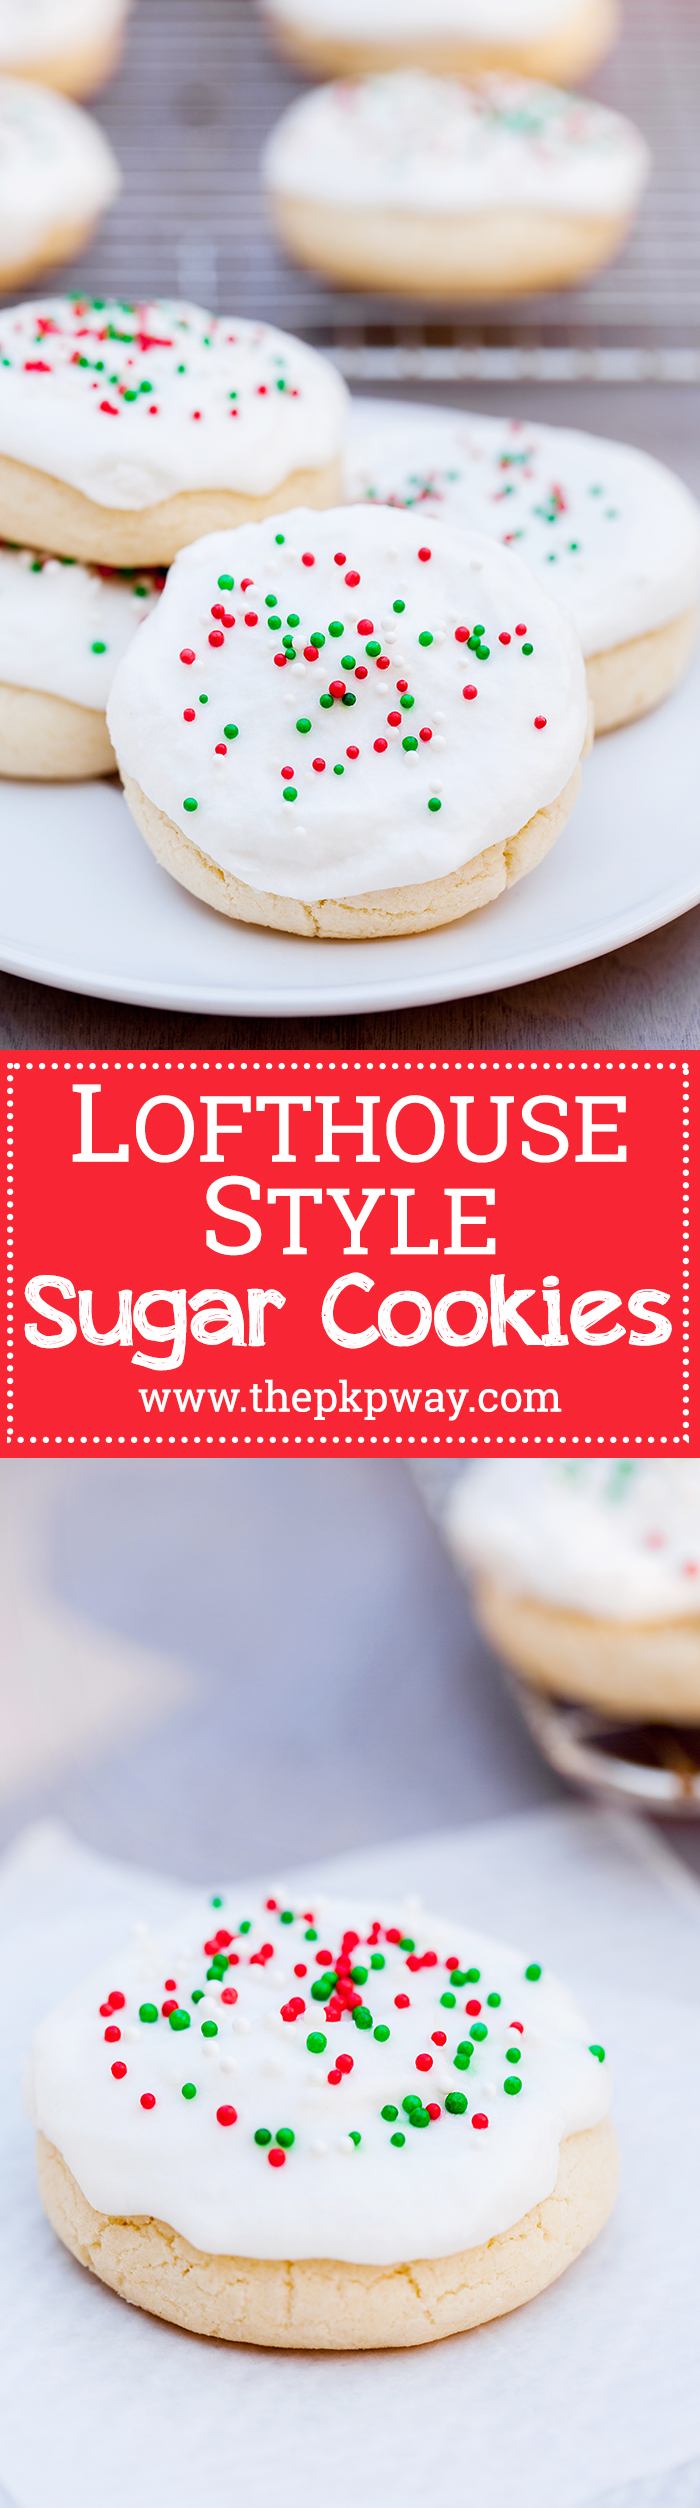 Homemade lofthouse style sugar cookies - simple and nostalgic